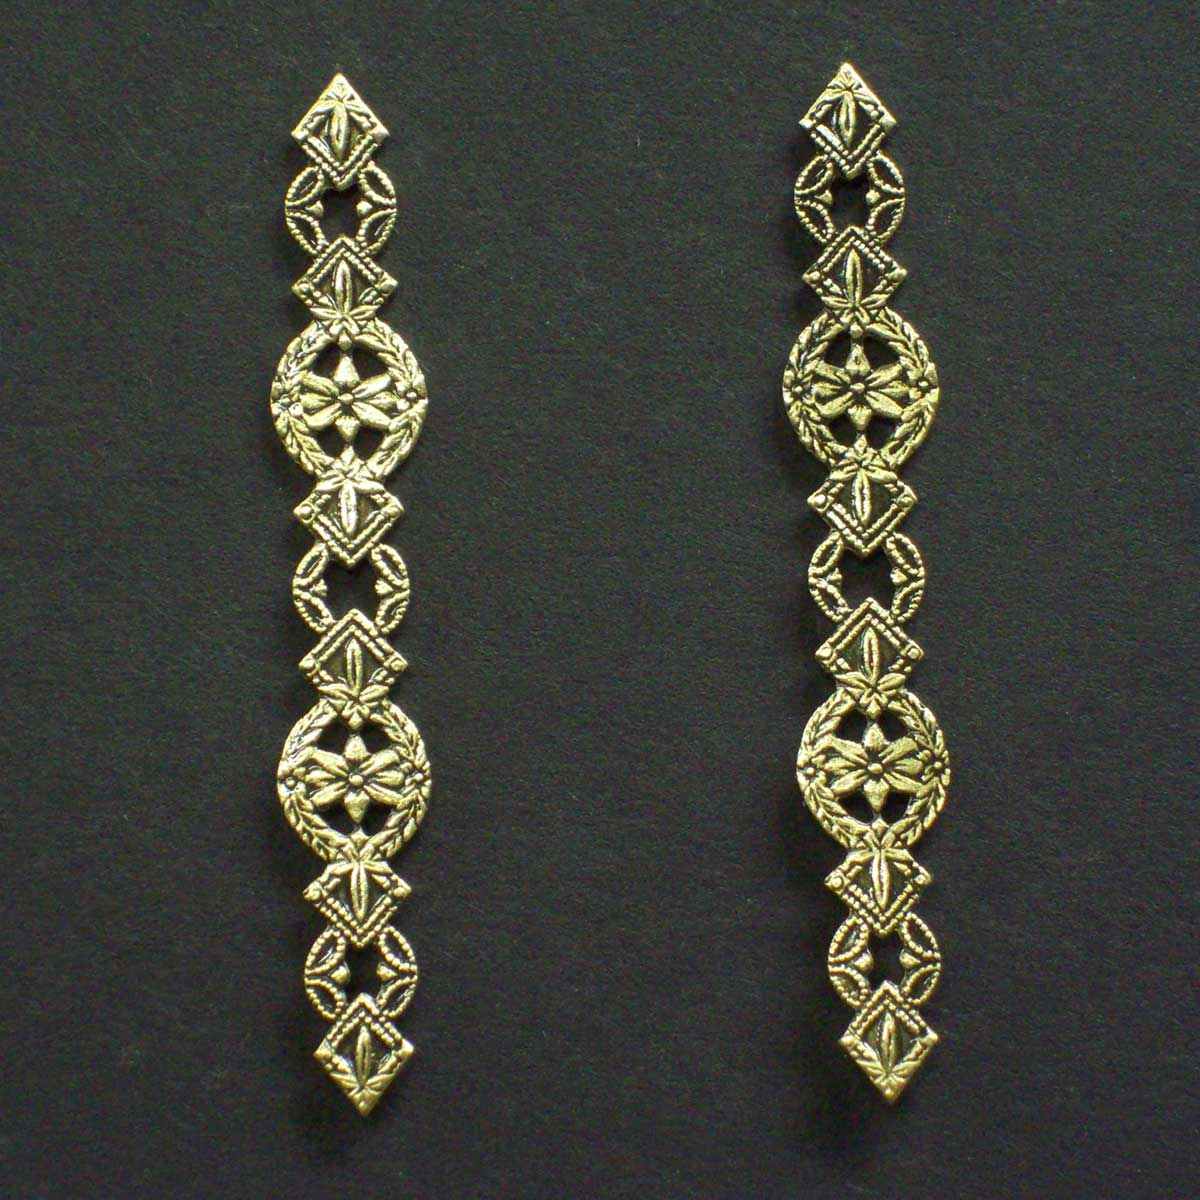 Floral Victorian Post Earrings